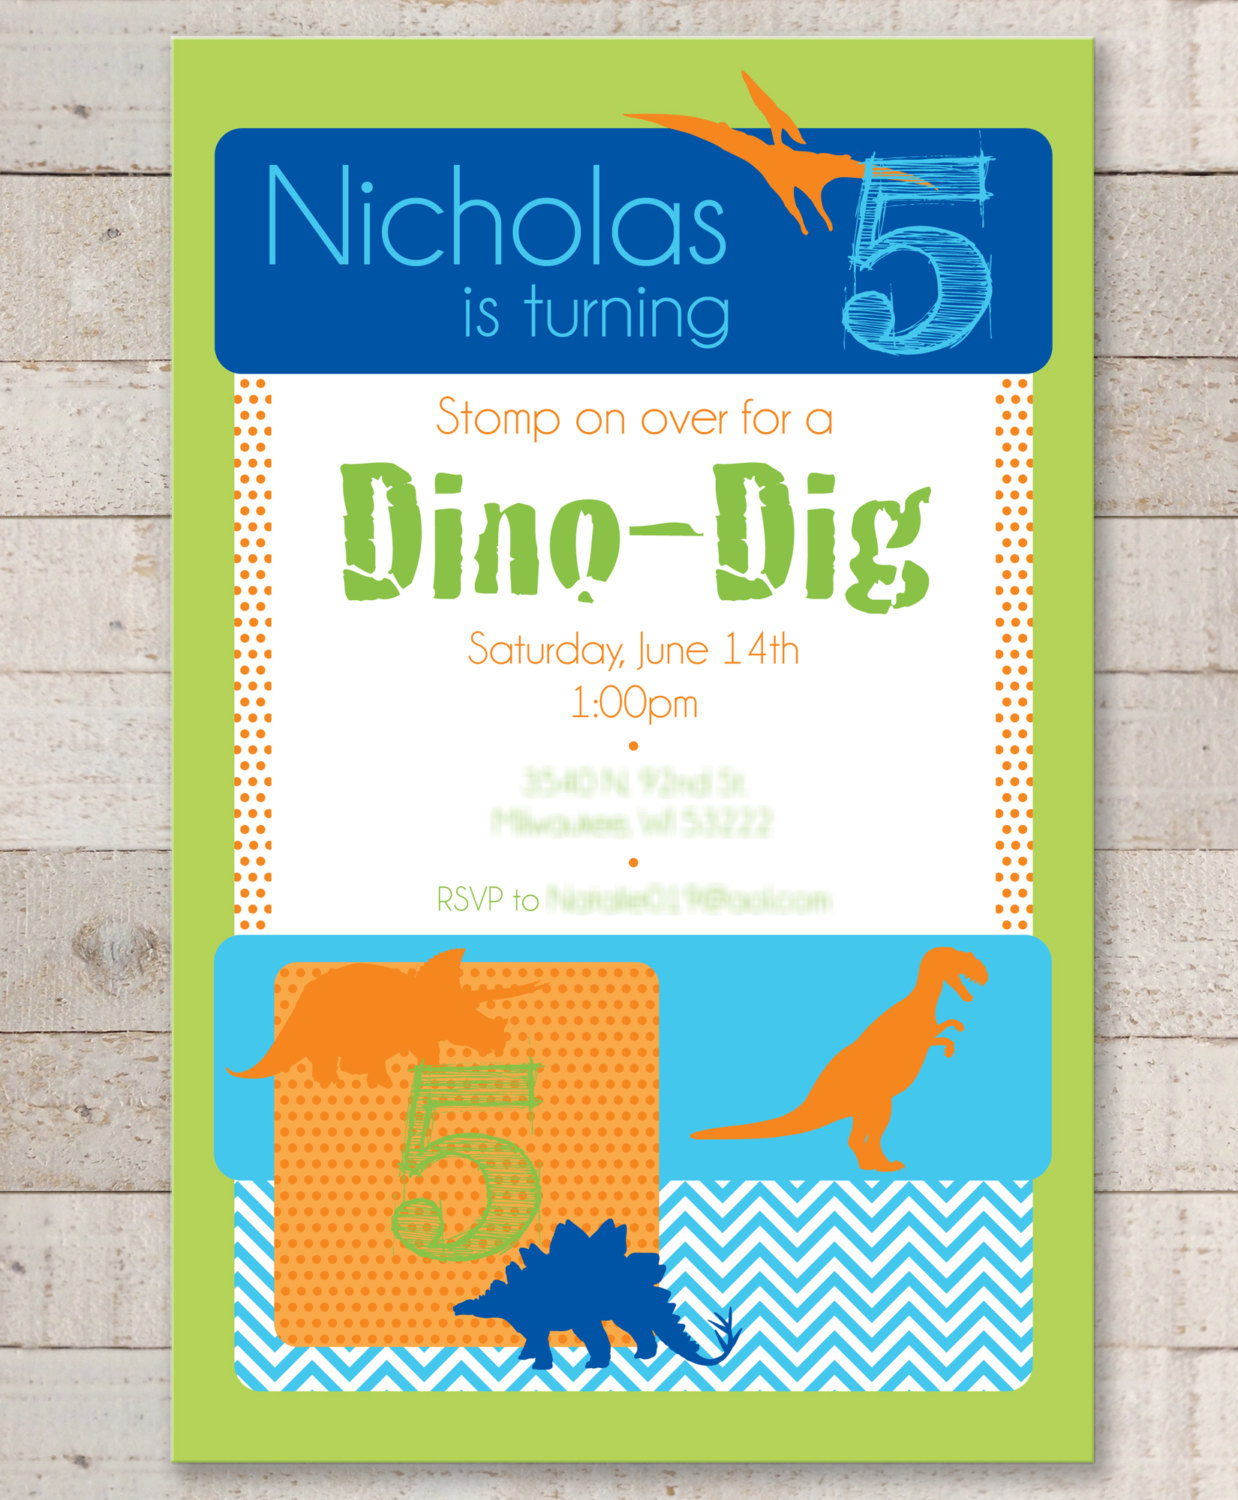 Dinosaur birthday invitations party invites boys 1st birthday dinosaur birthday invitations filmwisefo